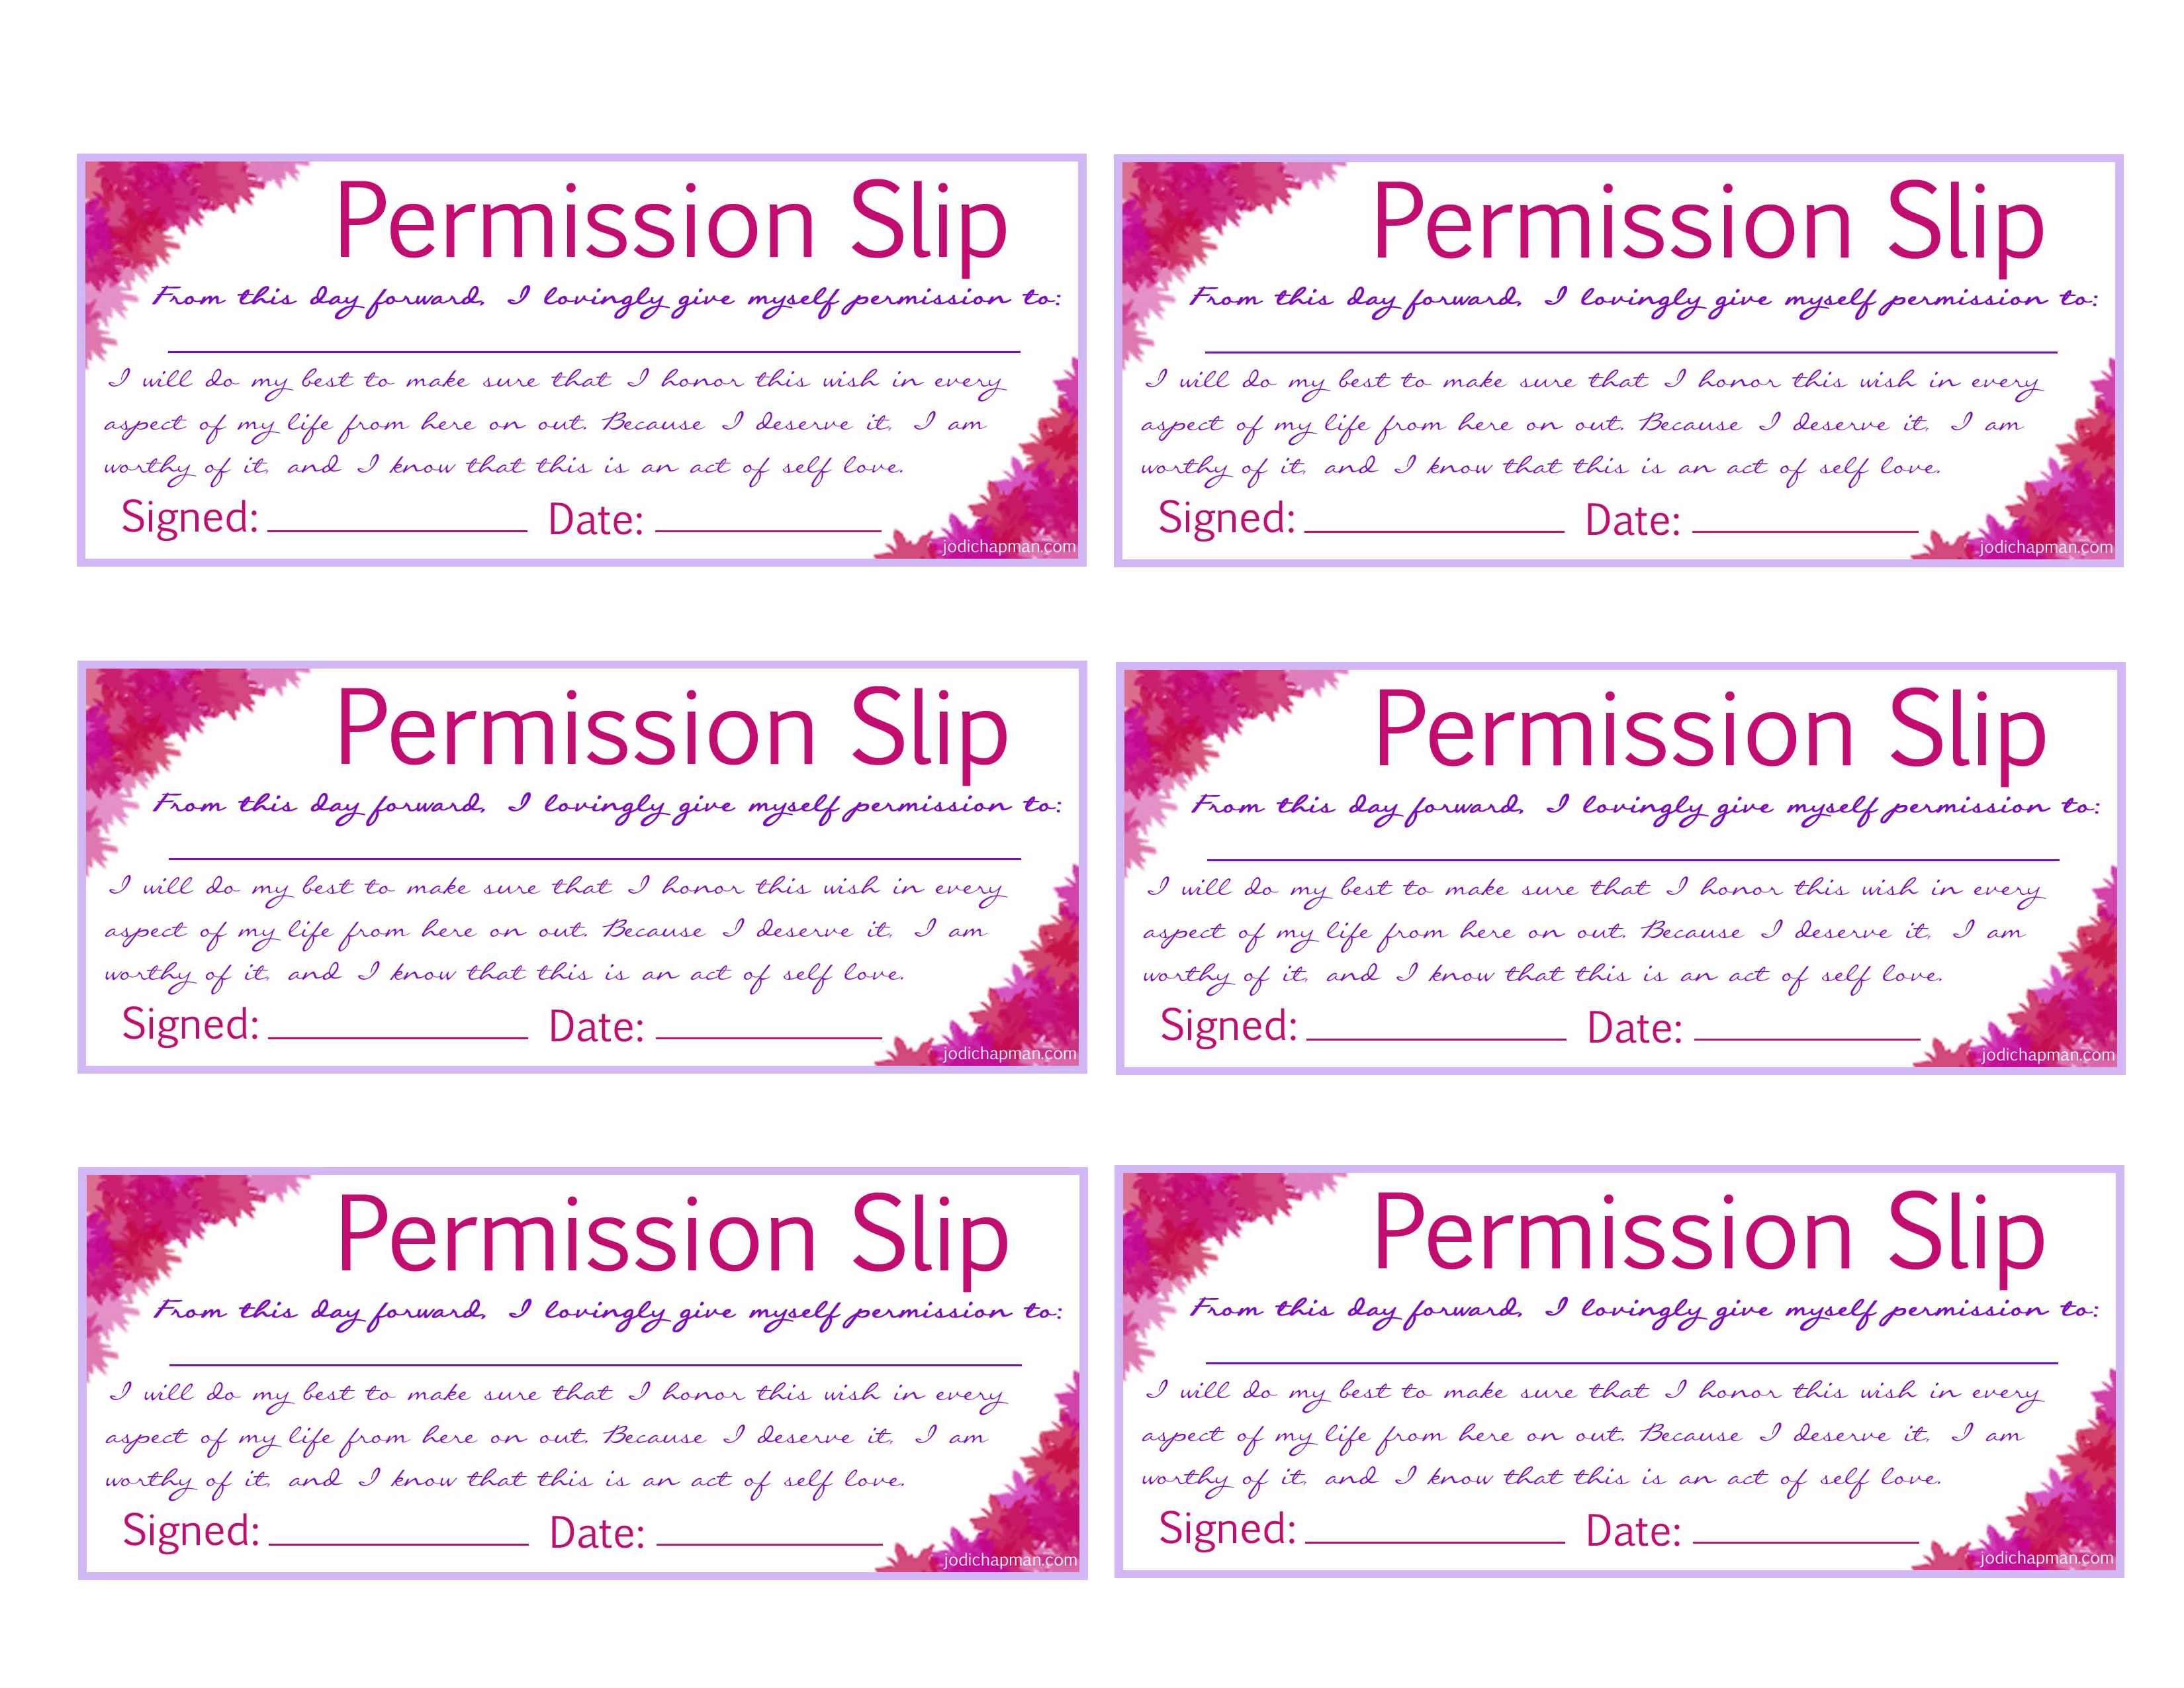 Your Permission Slip Free Print Out